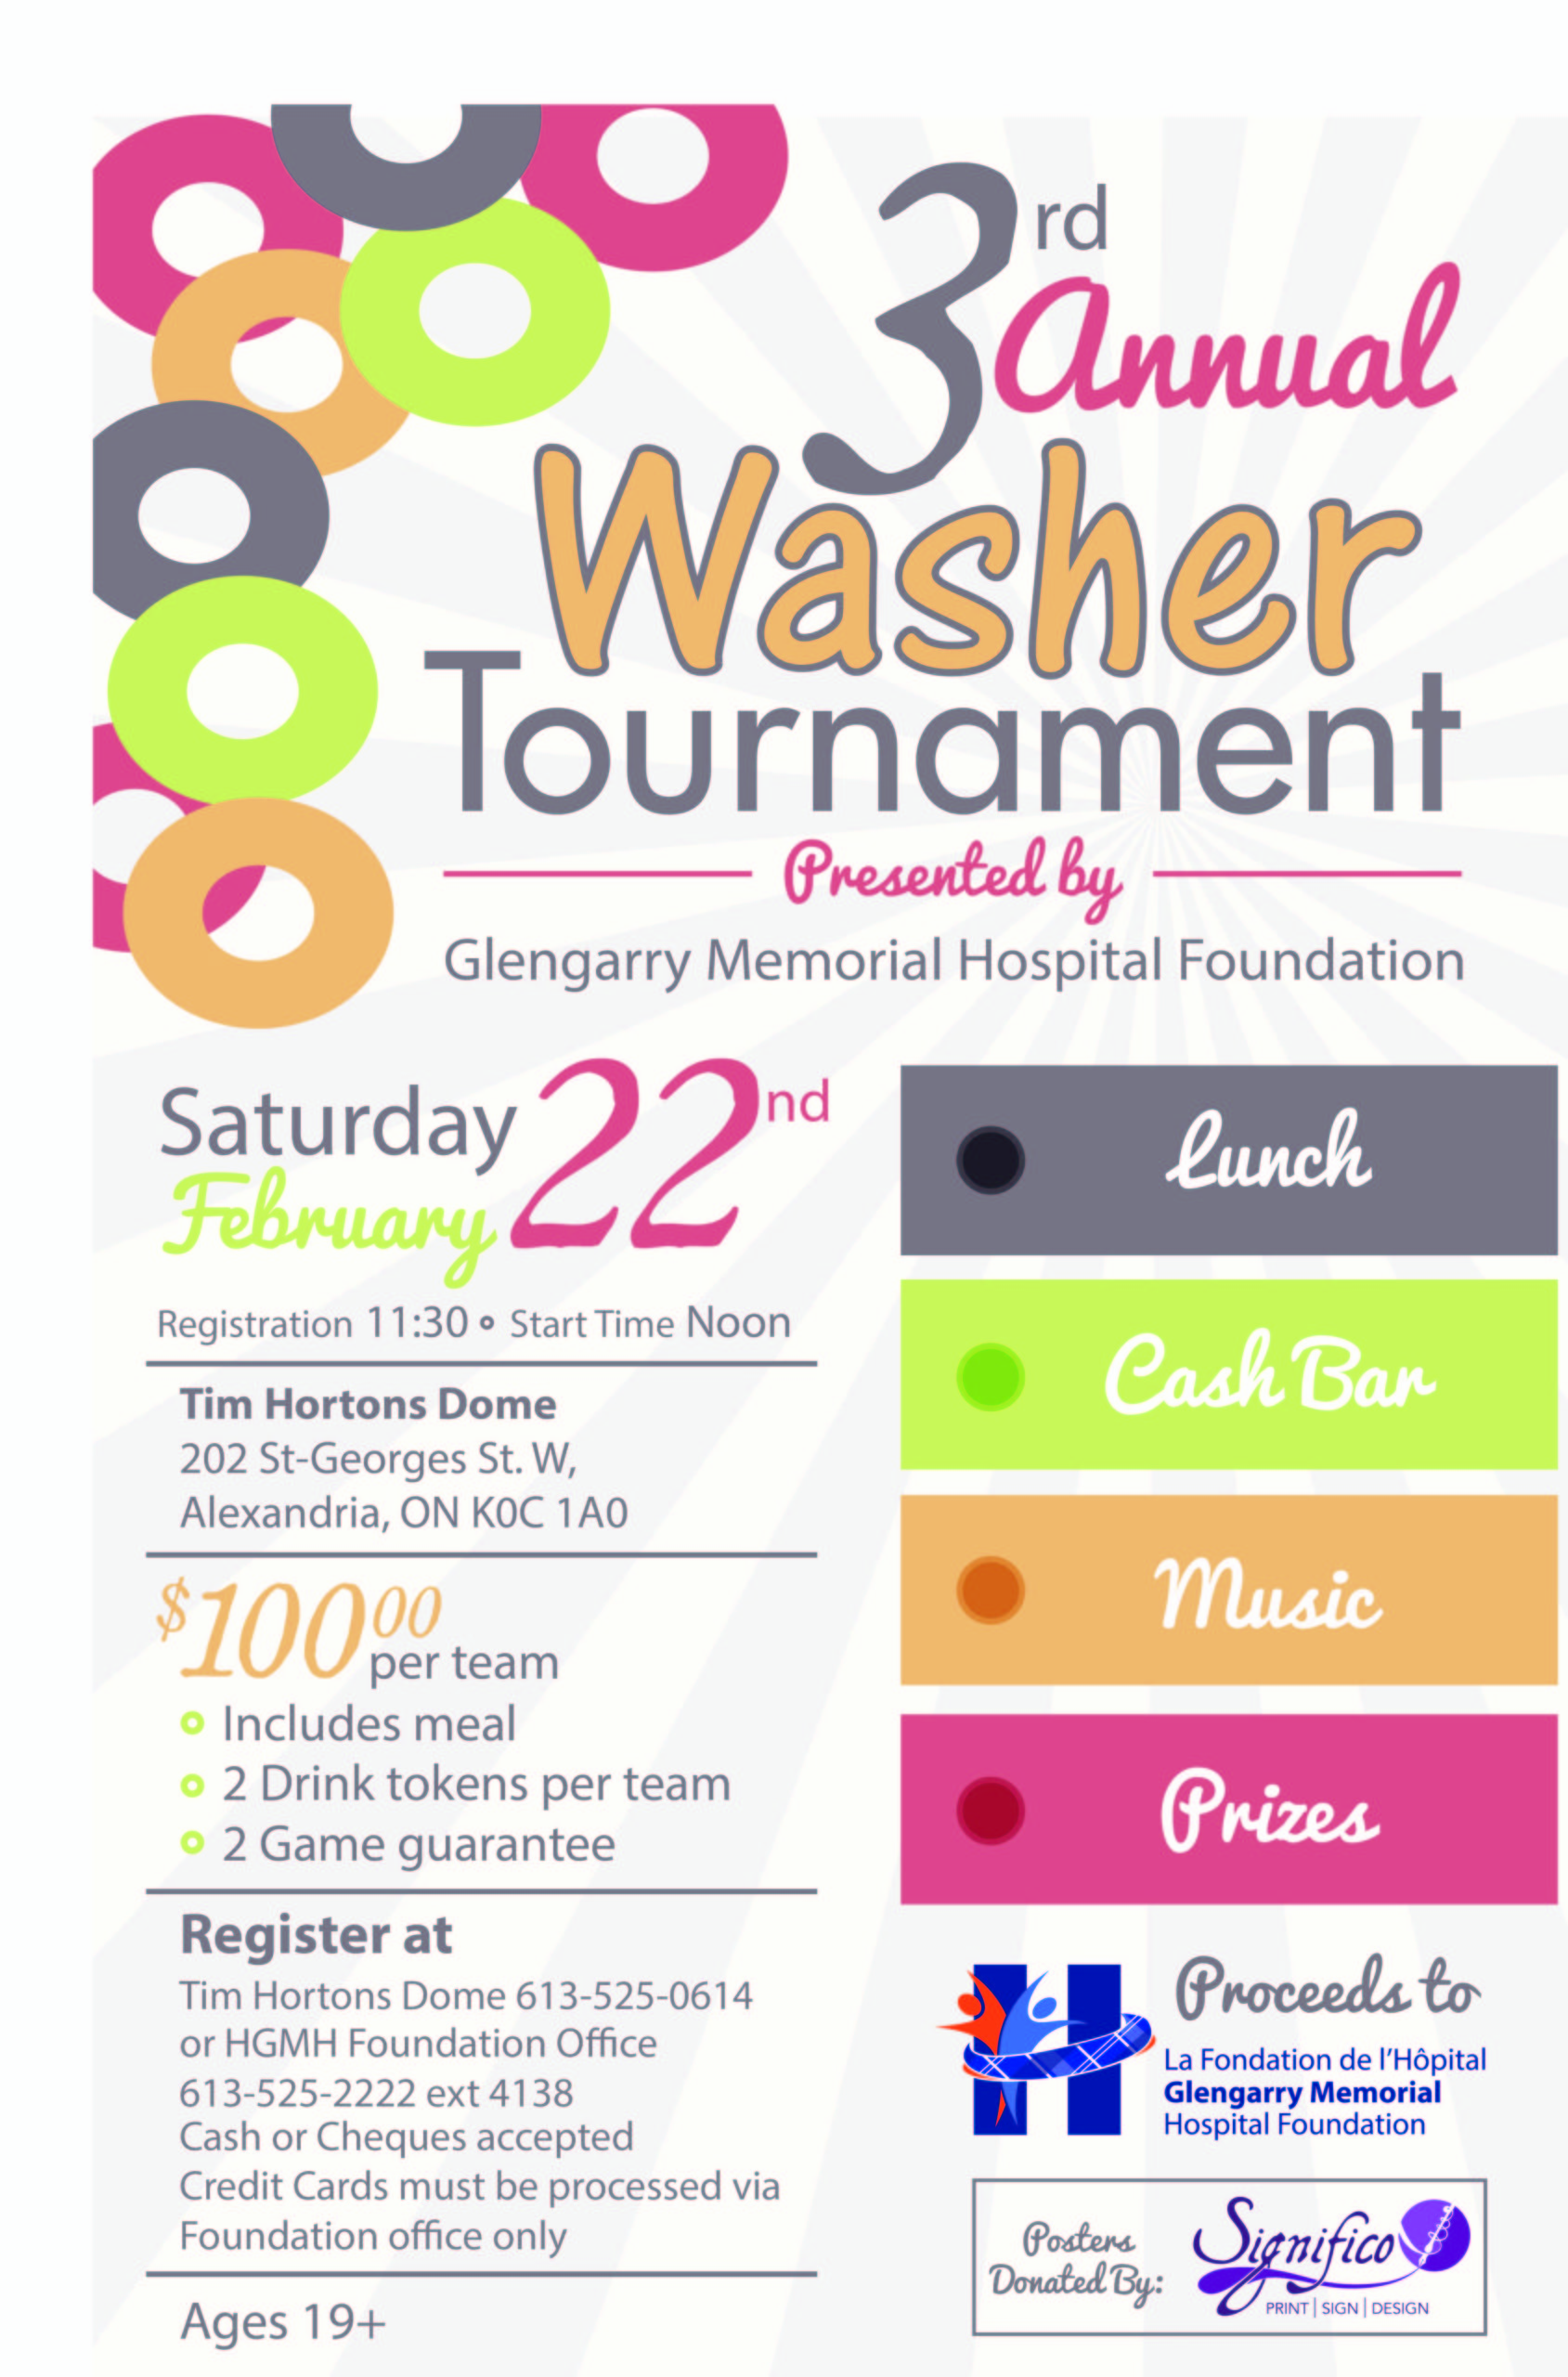 3rd annual washer tournament